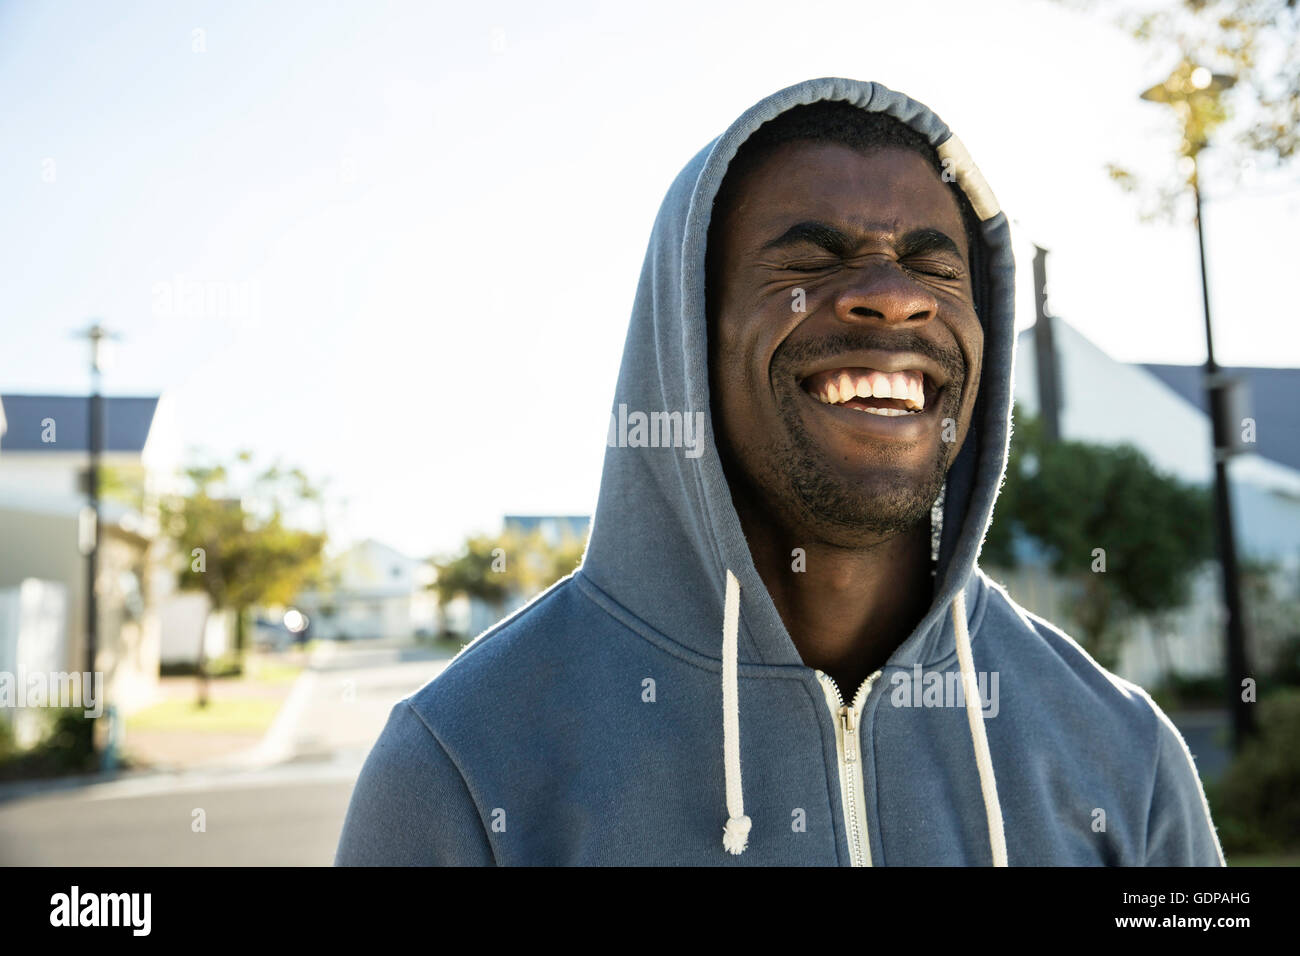 Portrait of man wearing hooded top eyes closed laughing - Stock Image